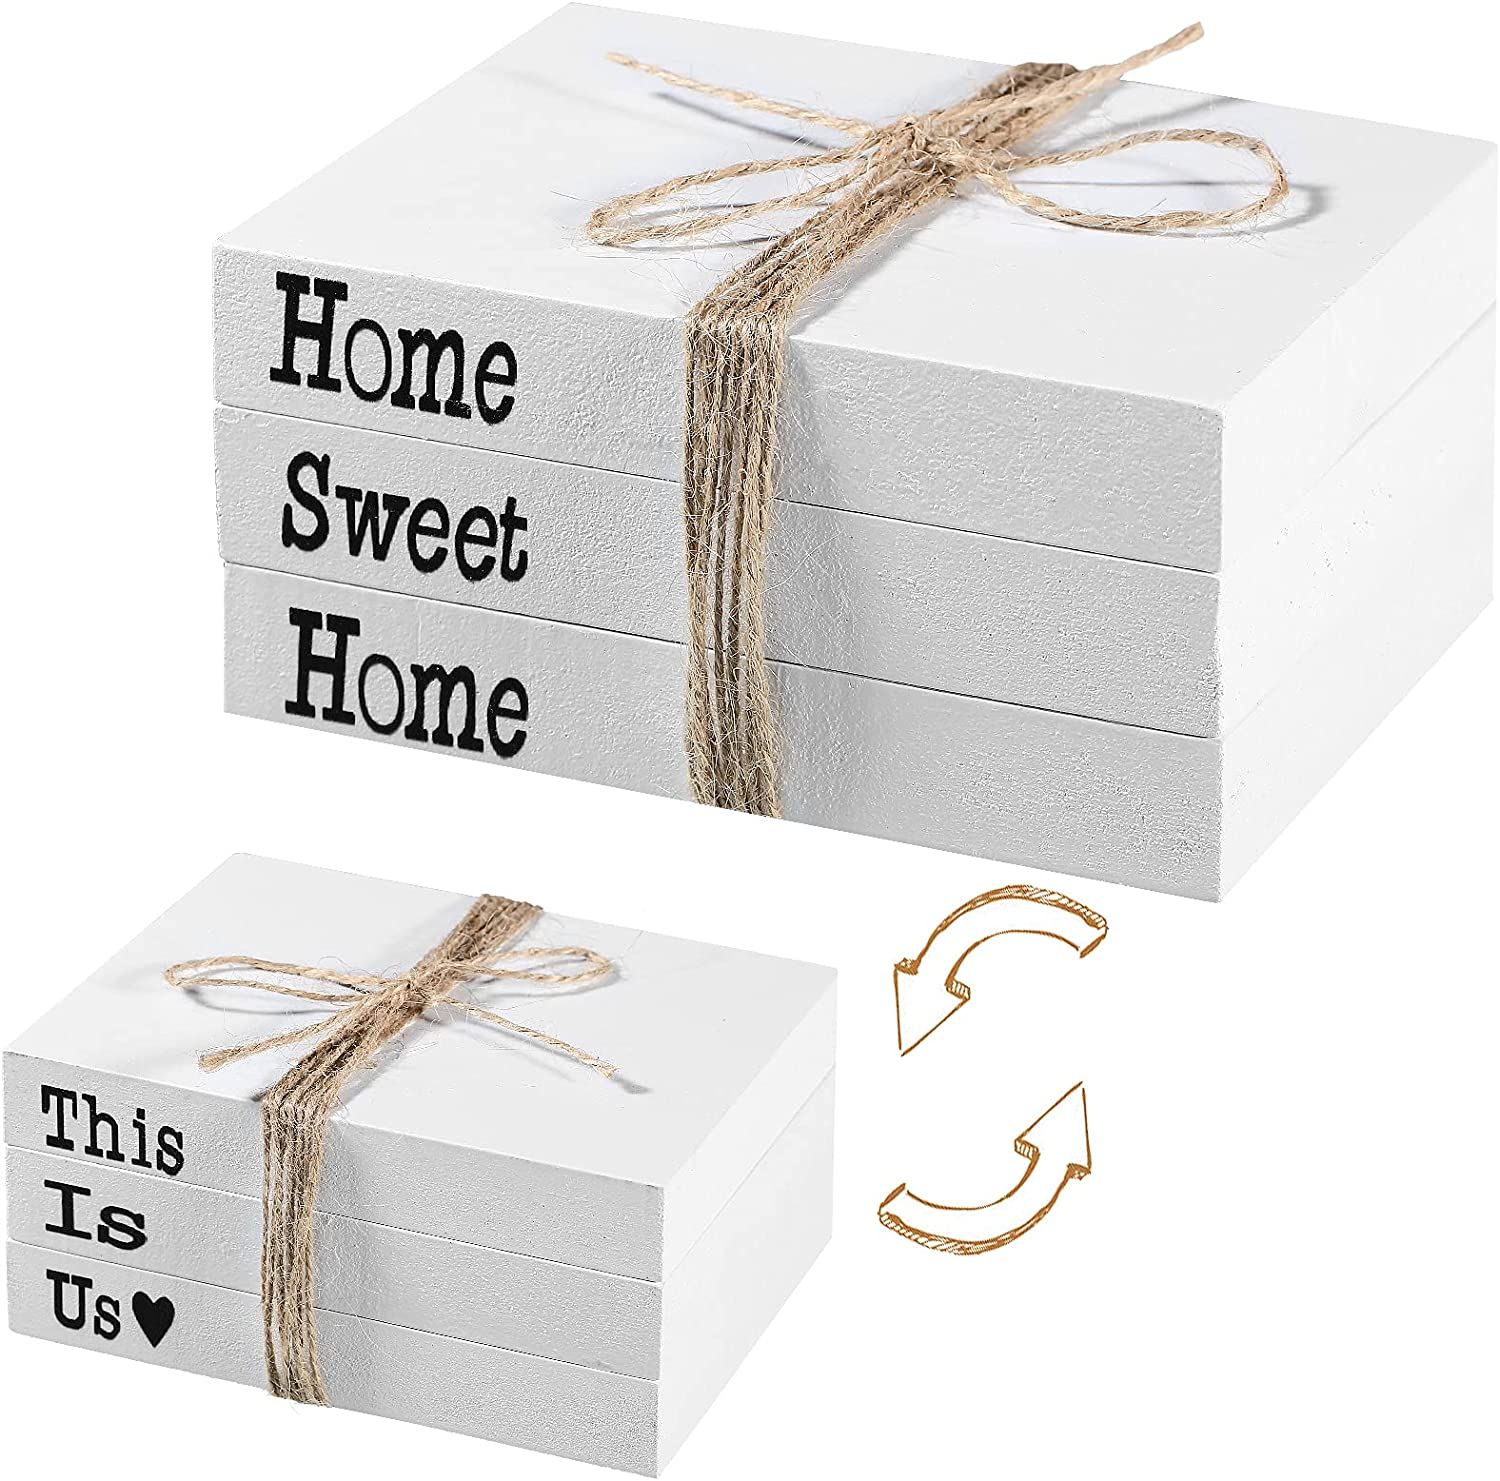 Wooden Decorative Books This is Us Home Sweet Home Stacked Books Rustic Farmhouse Accent Decor for Living Room Coffee Table, Entryway Shelf, End Table, Mantel, Bedroom Night Stand (Set of 3)